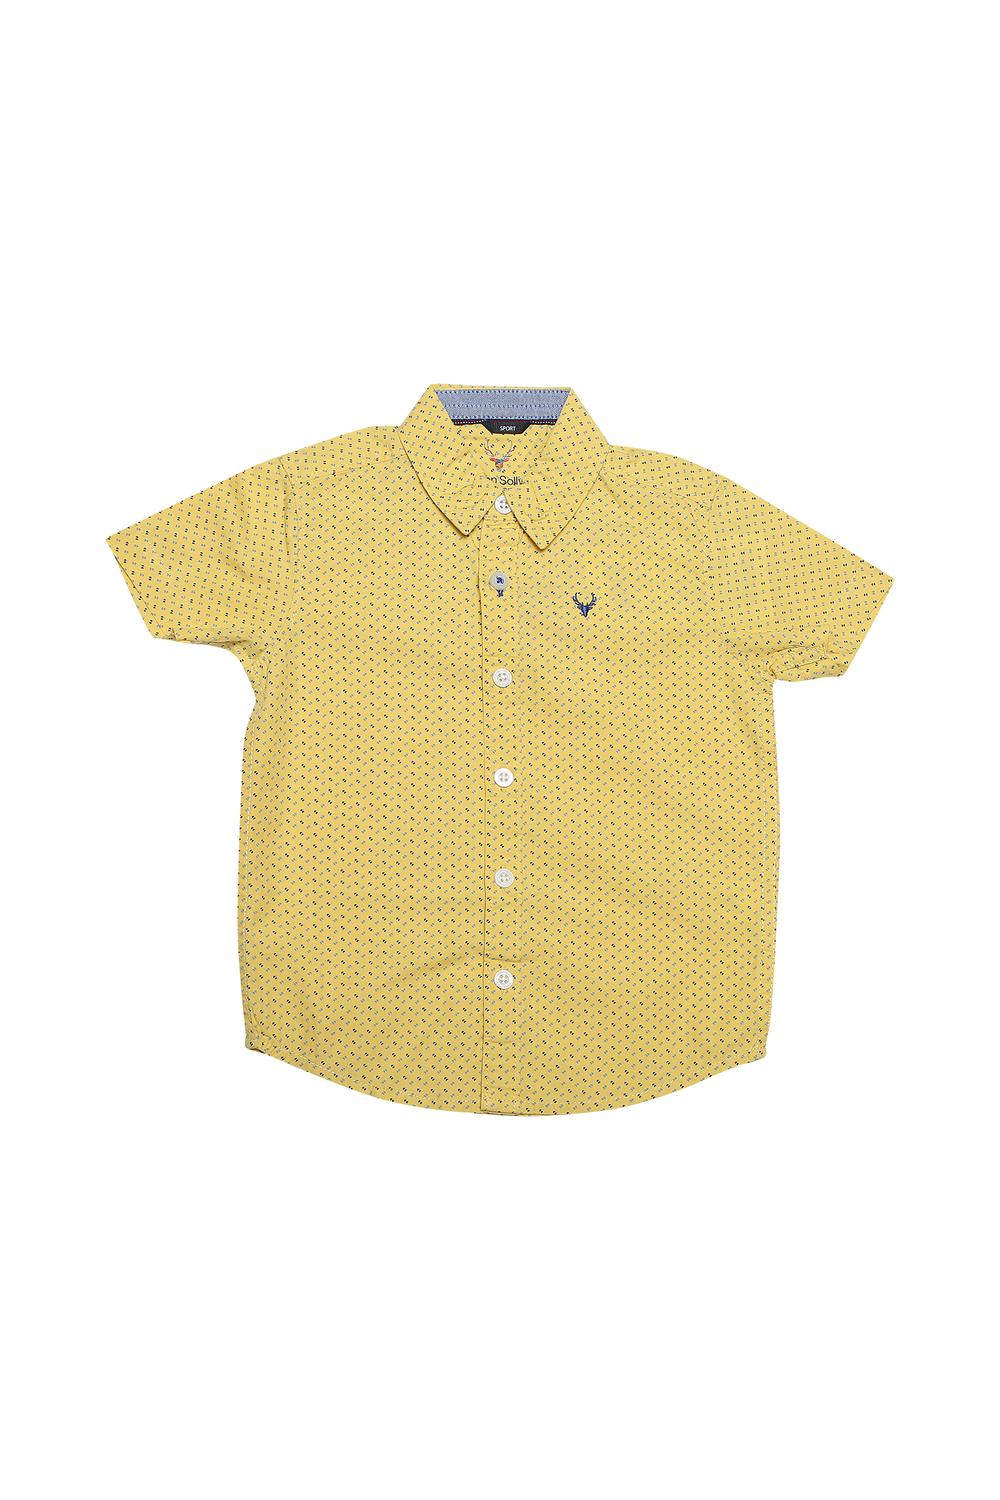 caef5a69e Allen Solly Junior Shirts & Tees, Allen Solly Yellow Shirt for Boys at  Allensolly.com